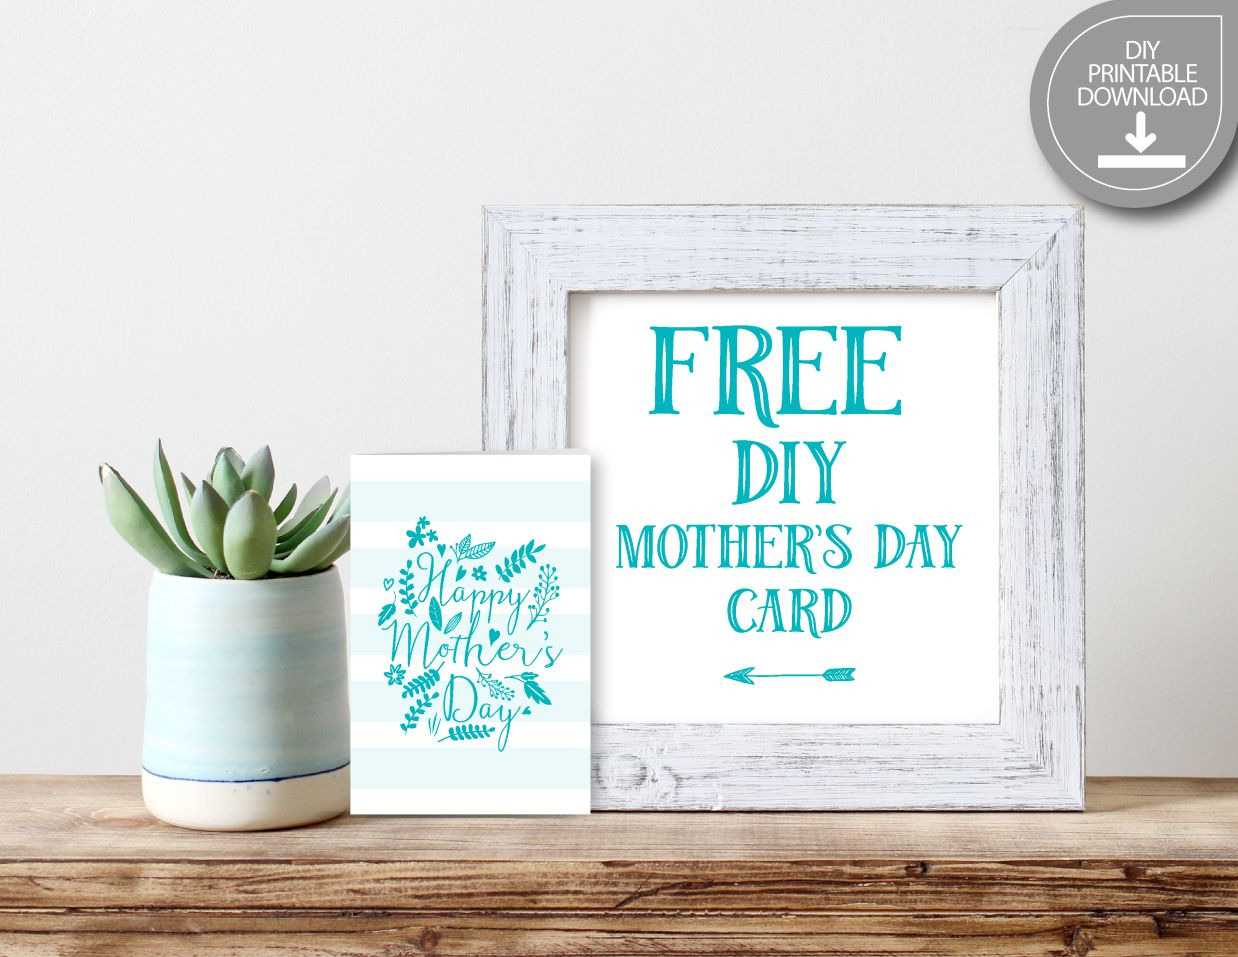 Mothers Day FREE Printable DIY-01